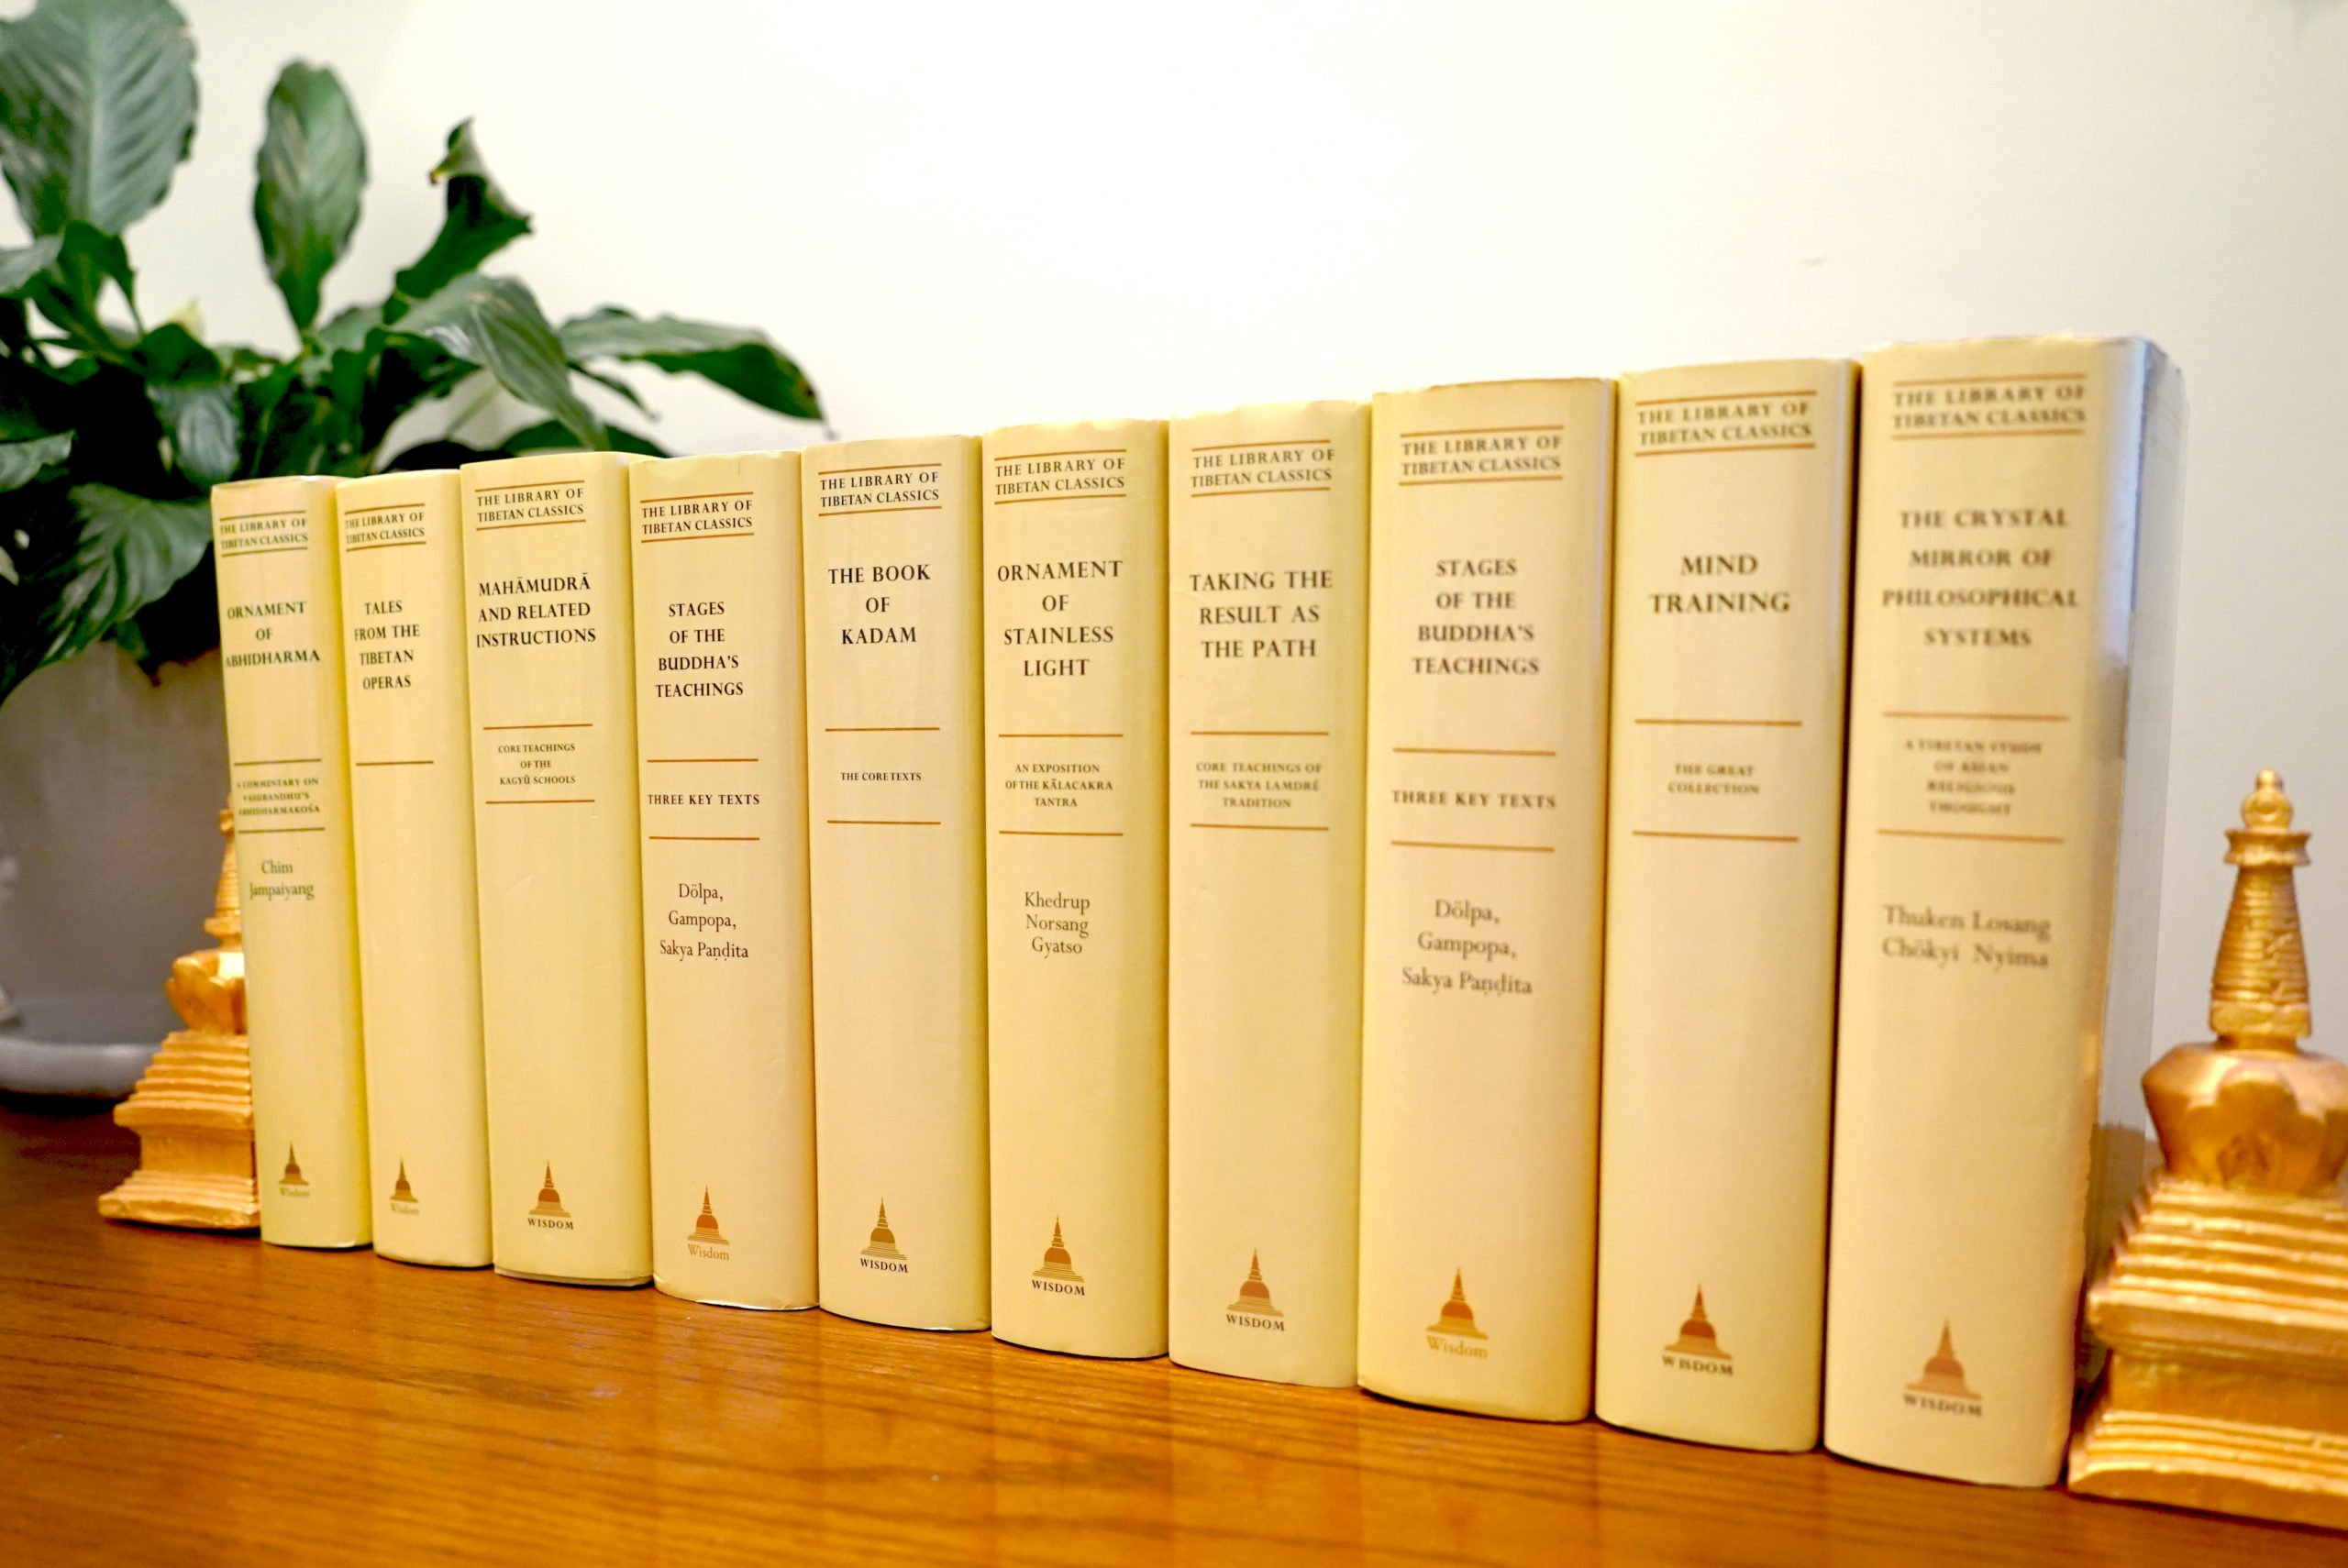 Books in the Library of Tibetan Classics series, a renowned translation series edited by Thupten Jinpa that preserves and celebrates Tibetan Buddhism and culture